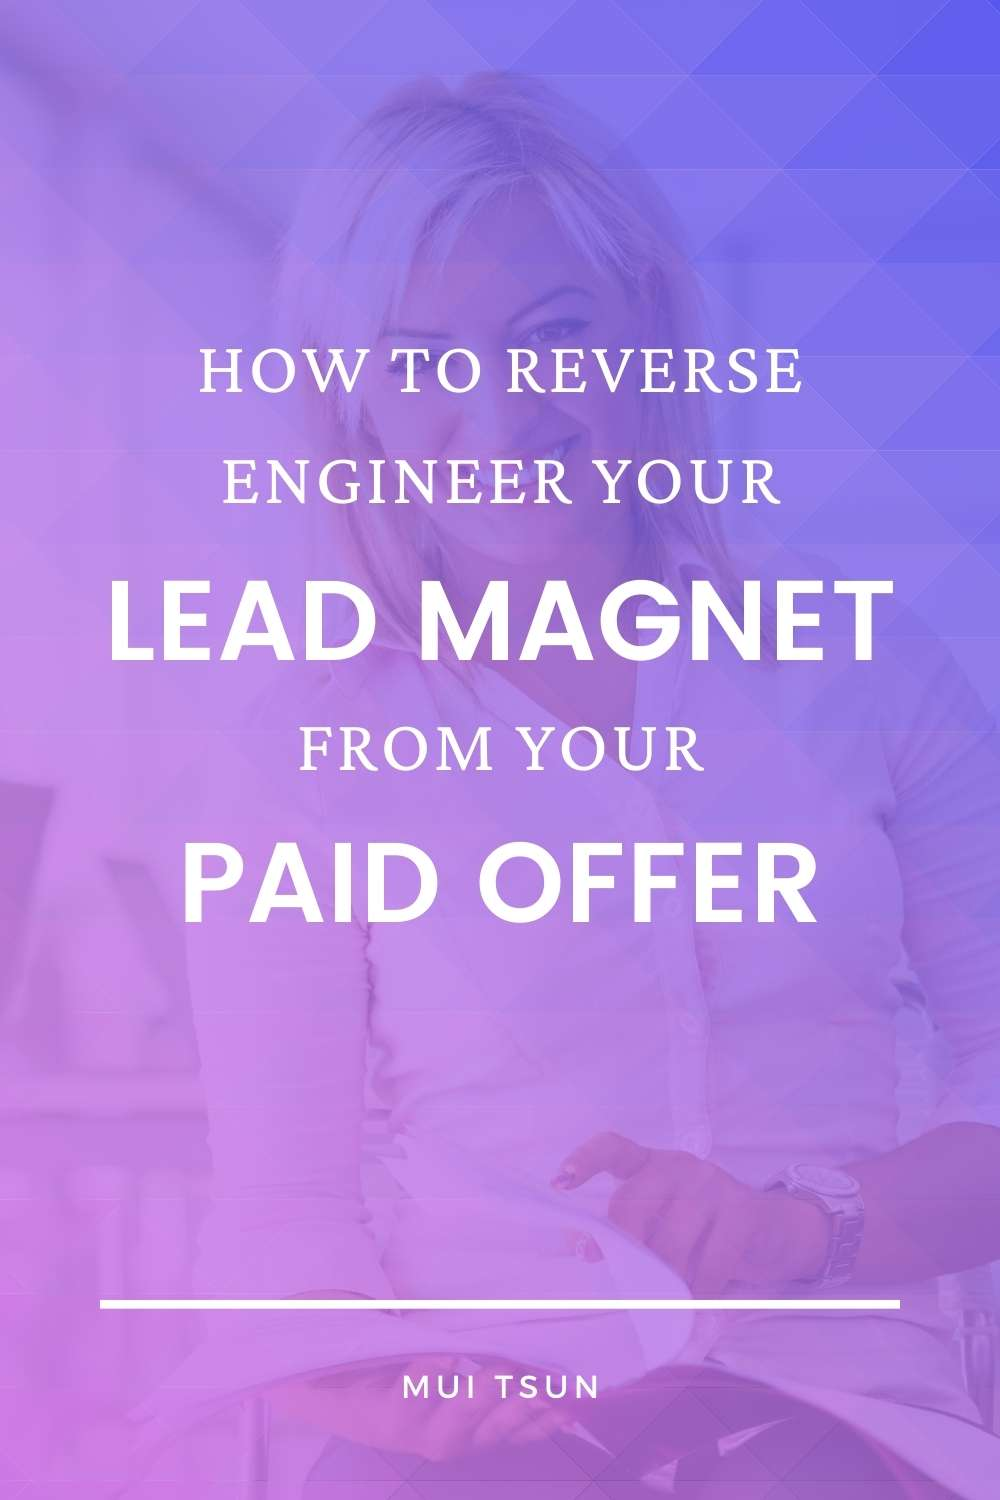 Is your lead magnet under-performing? Learn how to reverse engineer your lead magnet and guide your subscribers towards your paid offer.